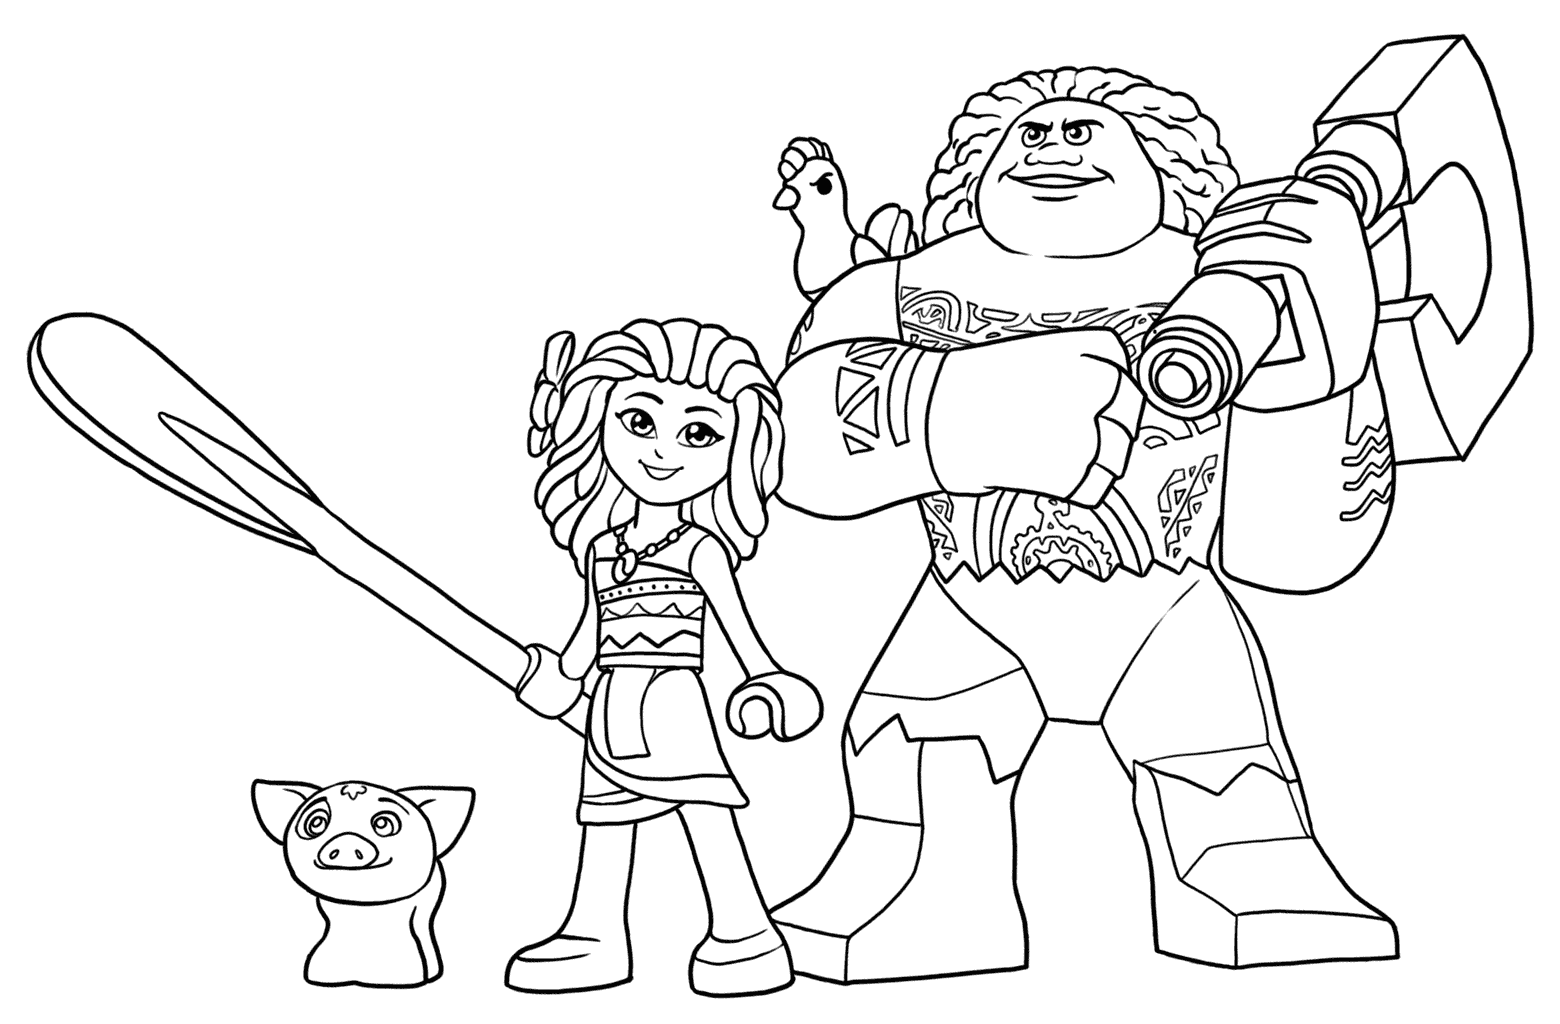 Coloring Rocks Lego Coloring Pages Lego Movie Coloring Pages Lego Coloring